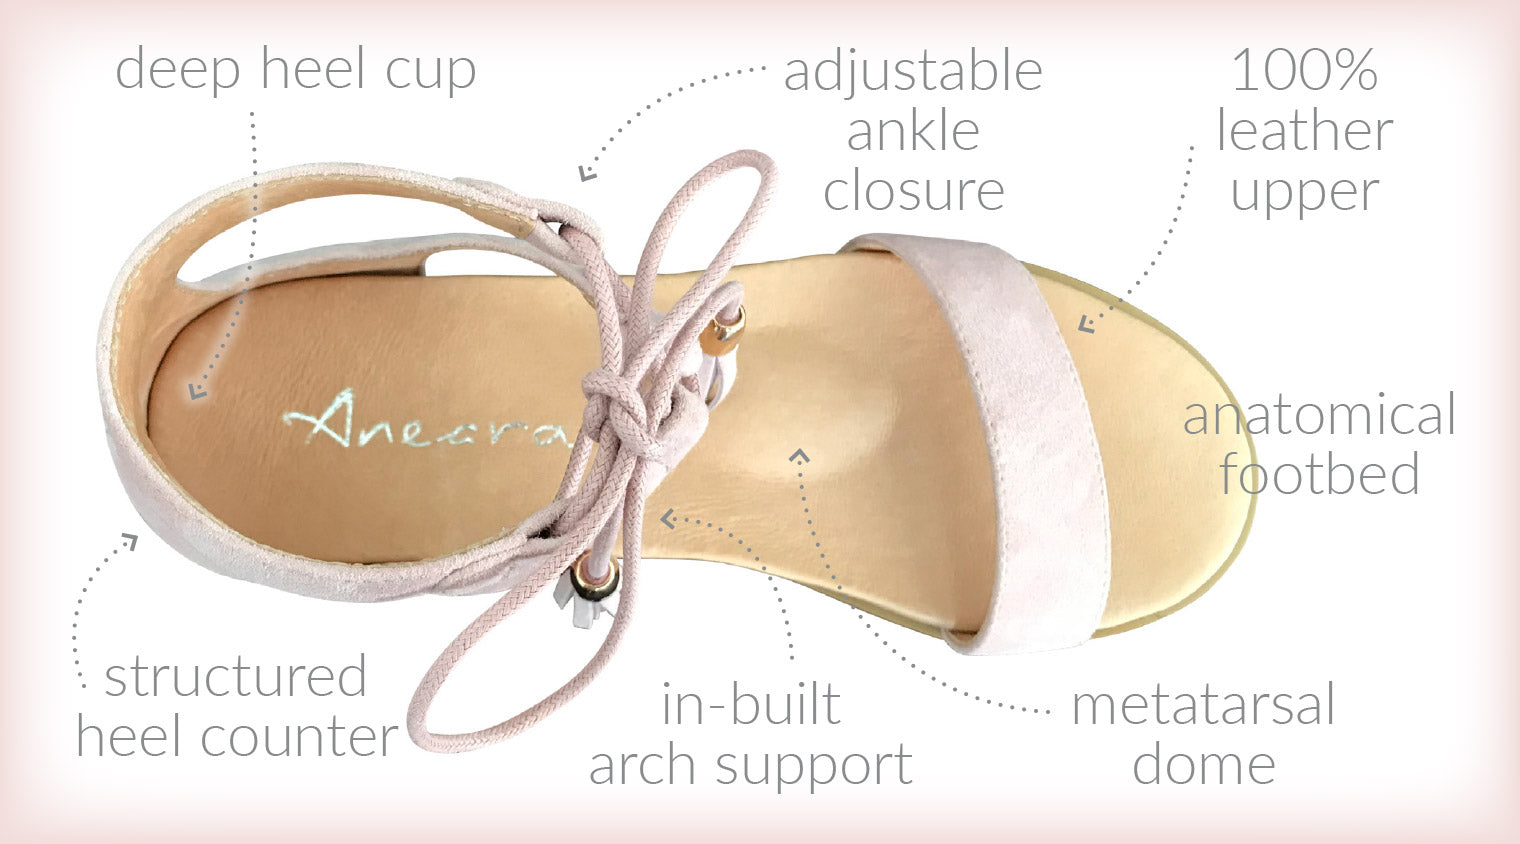 Aneara Paige Orthopaedic Childrens Shoe Podiatrist Approved